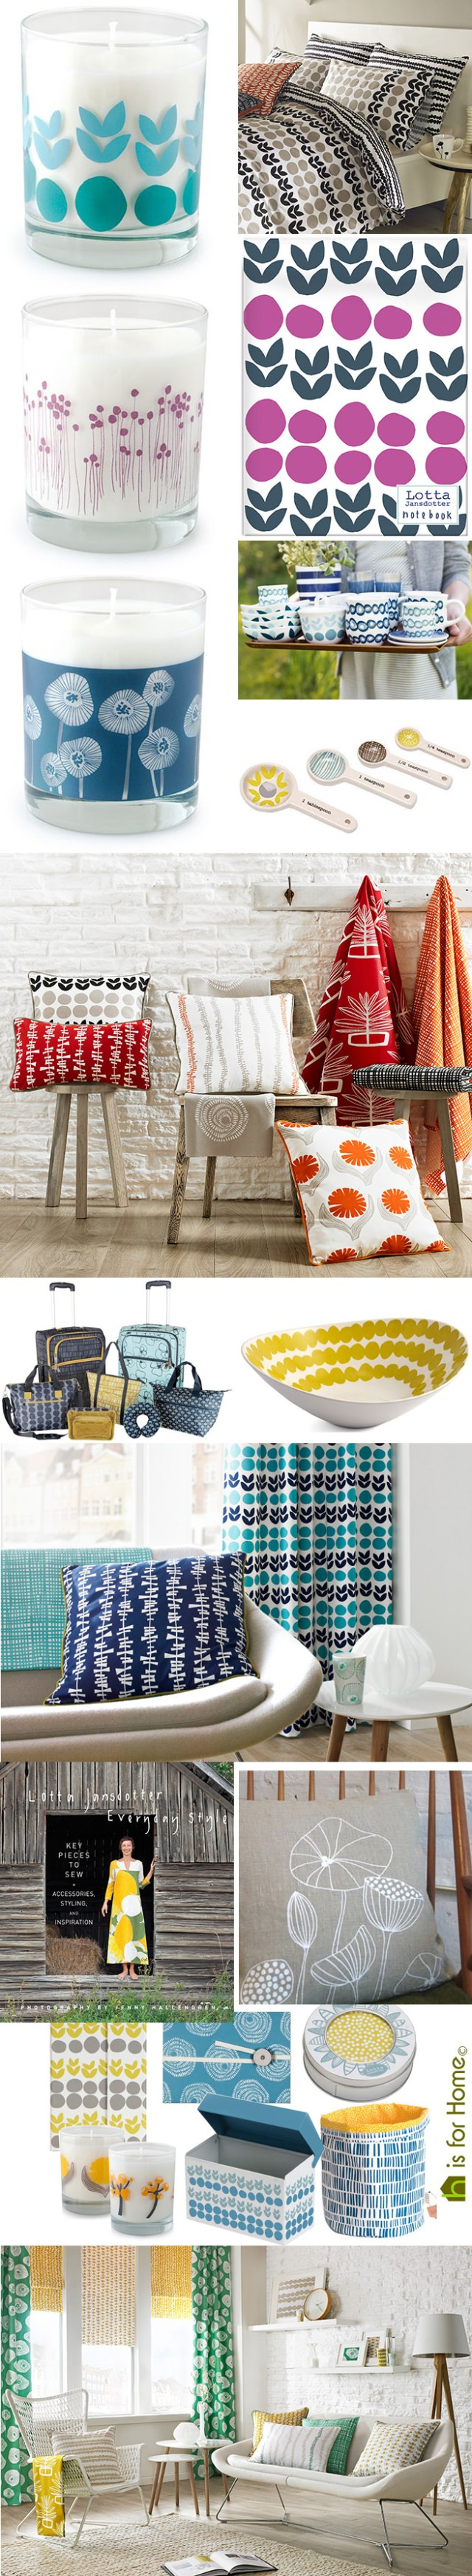 Mosaic of Lotta Jansdotter designs | H is for Home